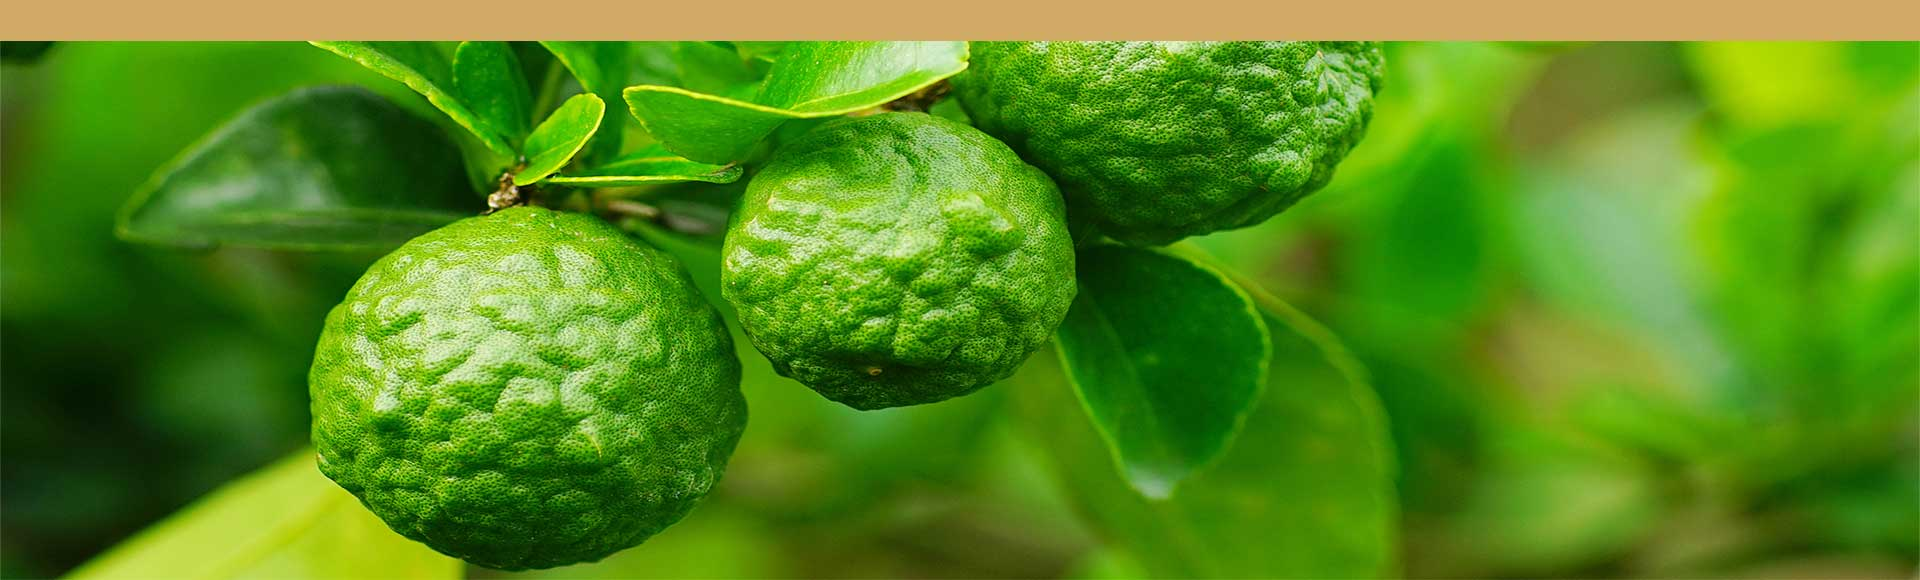 bergamot fruit used for earl grey black tea